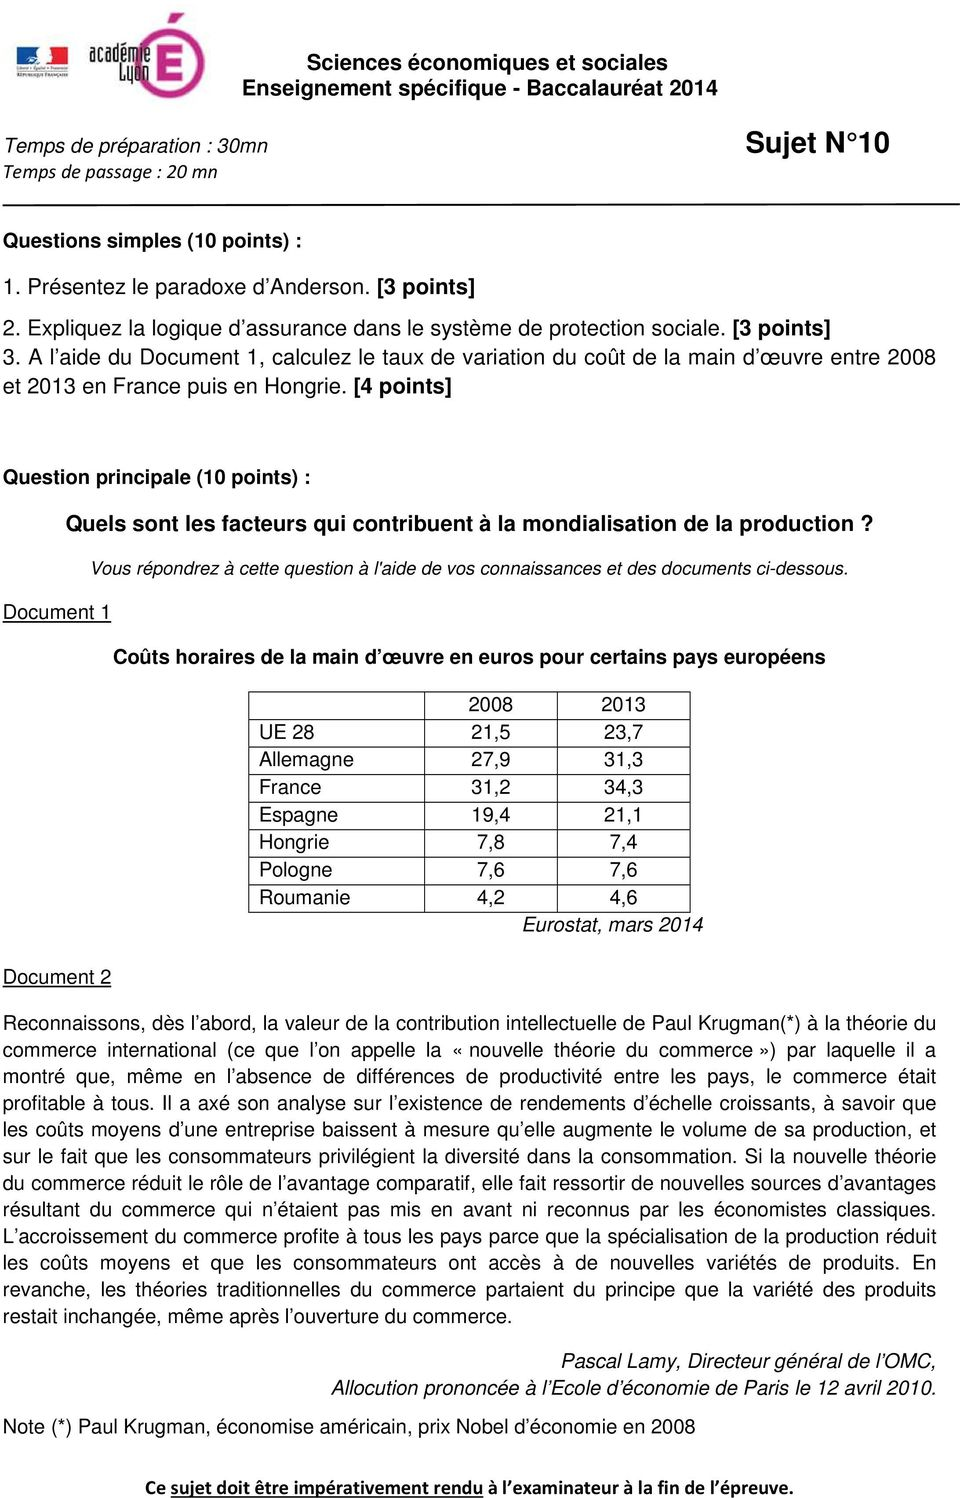 [4 points] Document 1 Document 2 Quels sont les facteurs qui contribuent à la mondialisation de la production?